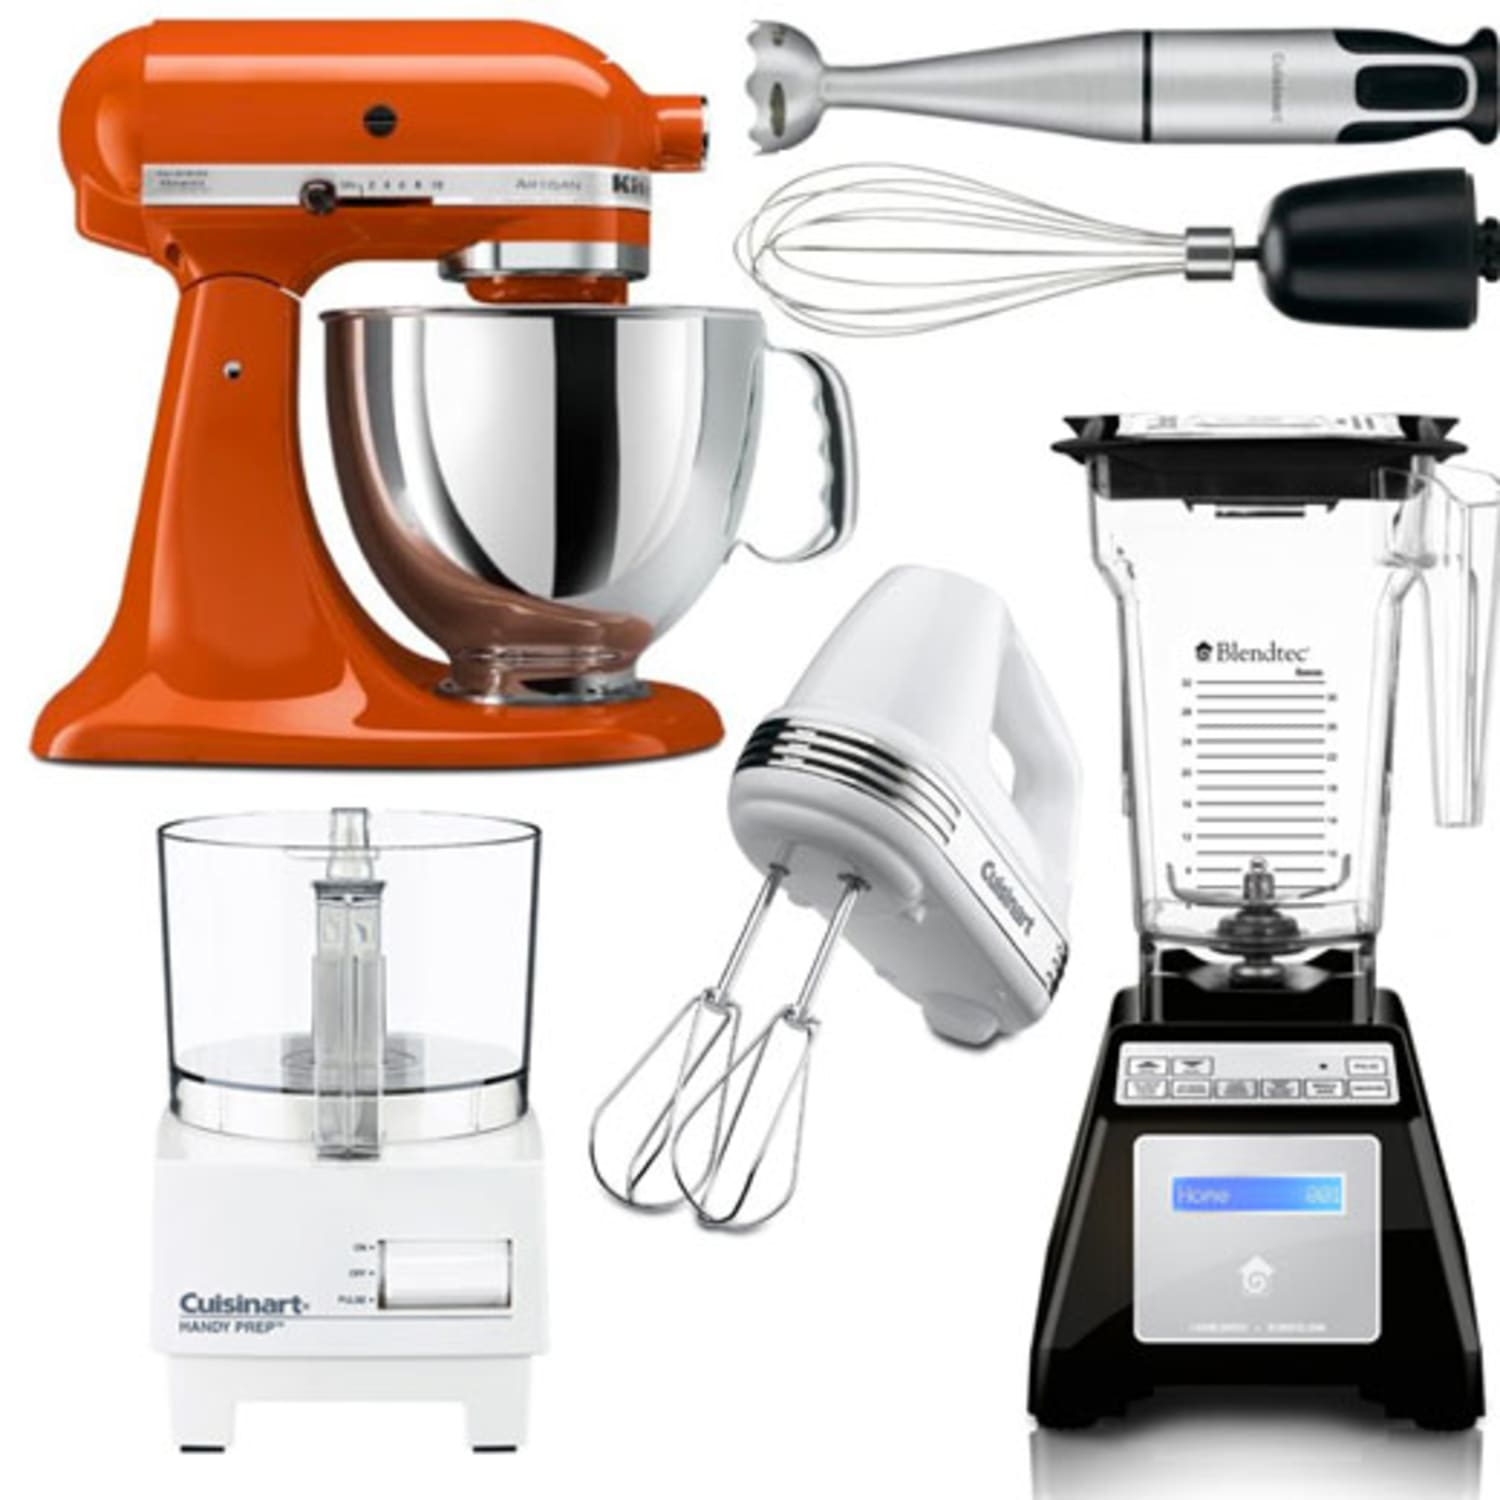 The Kitchn S Guide To Essential Small Electric Appliances